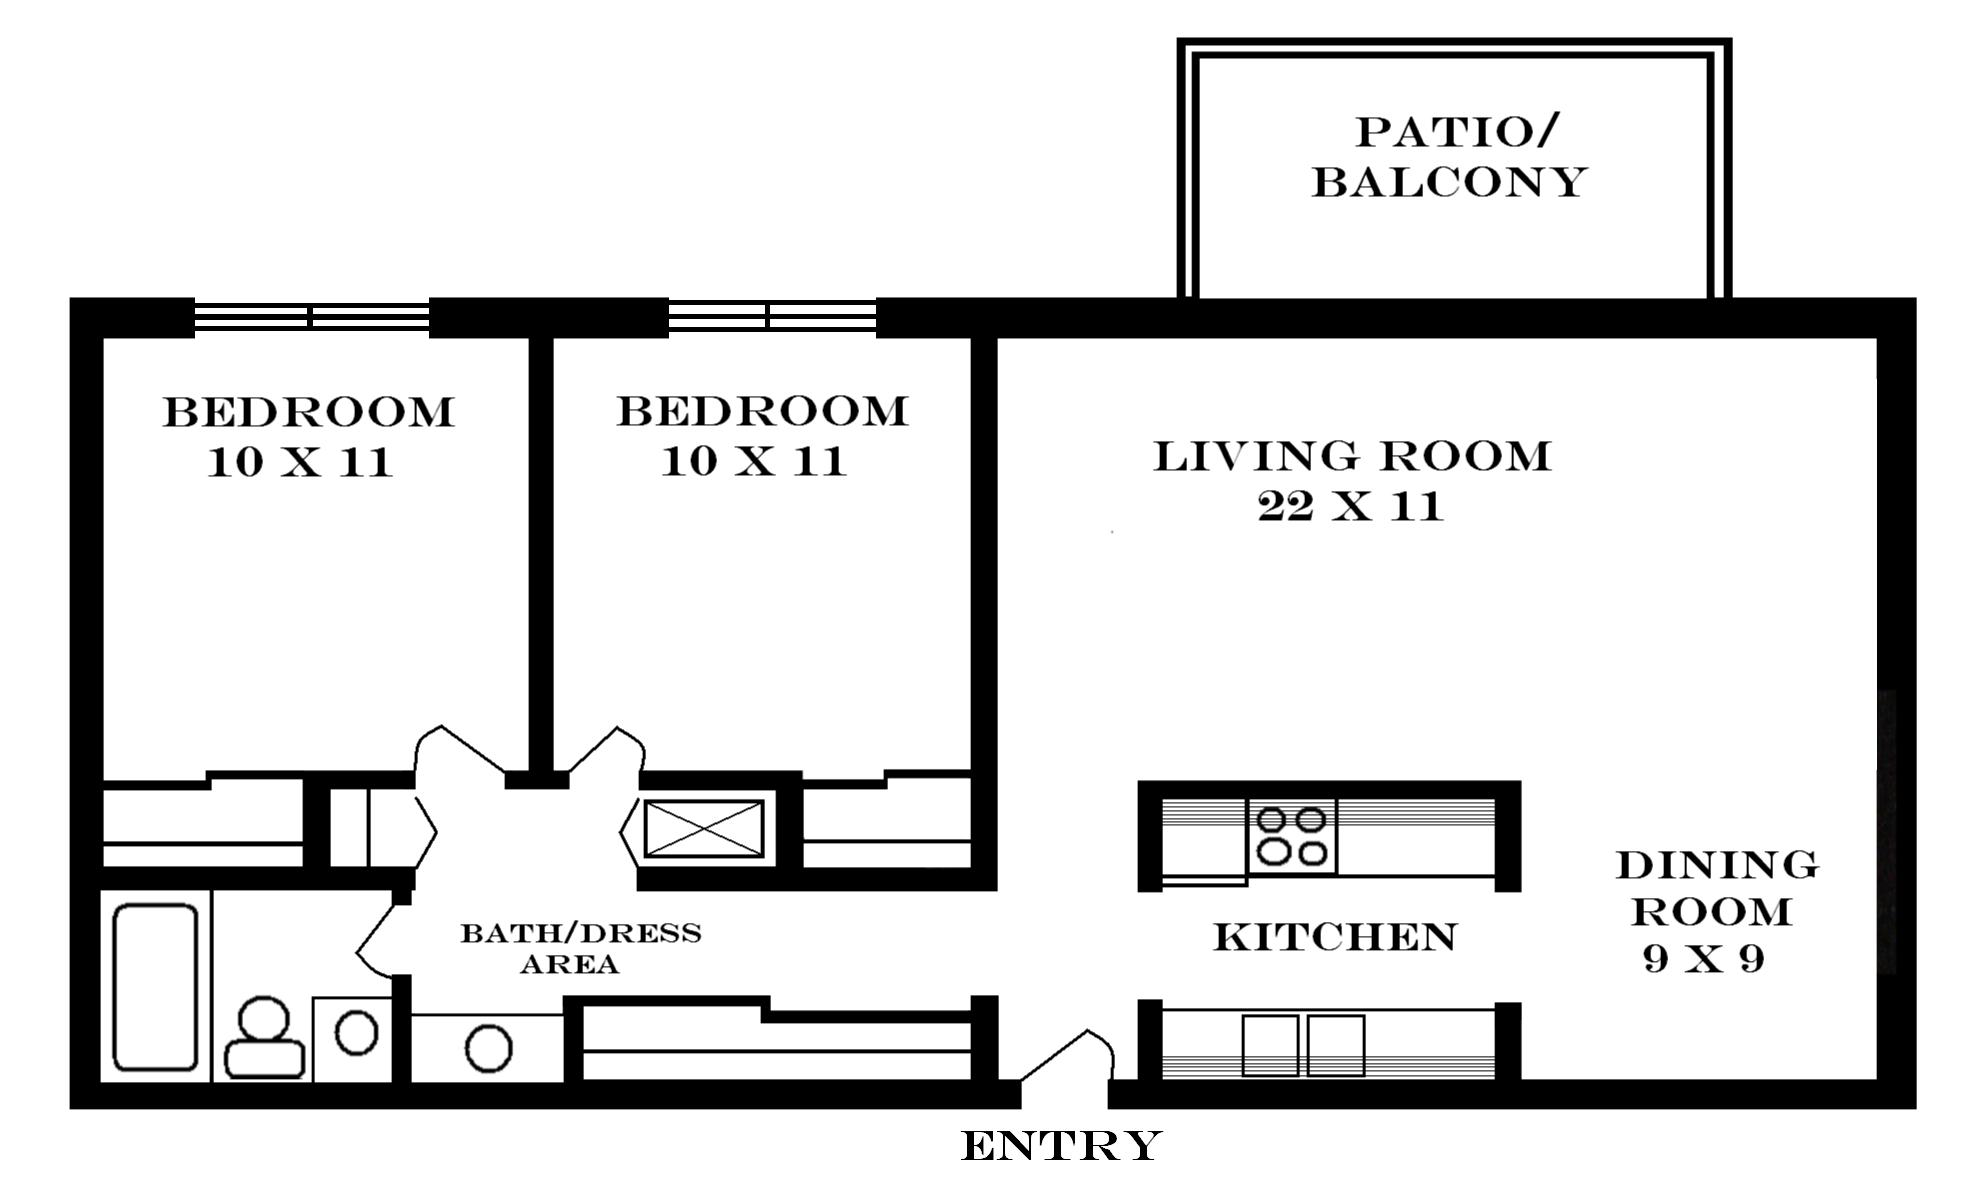 Lawrence apartments meadowbrook 2601 dover square for Small apartment layout plans